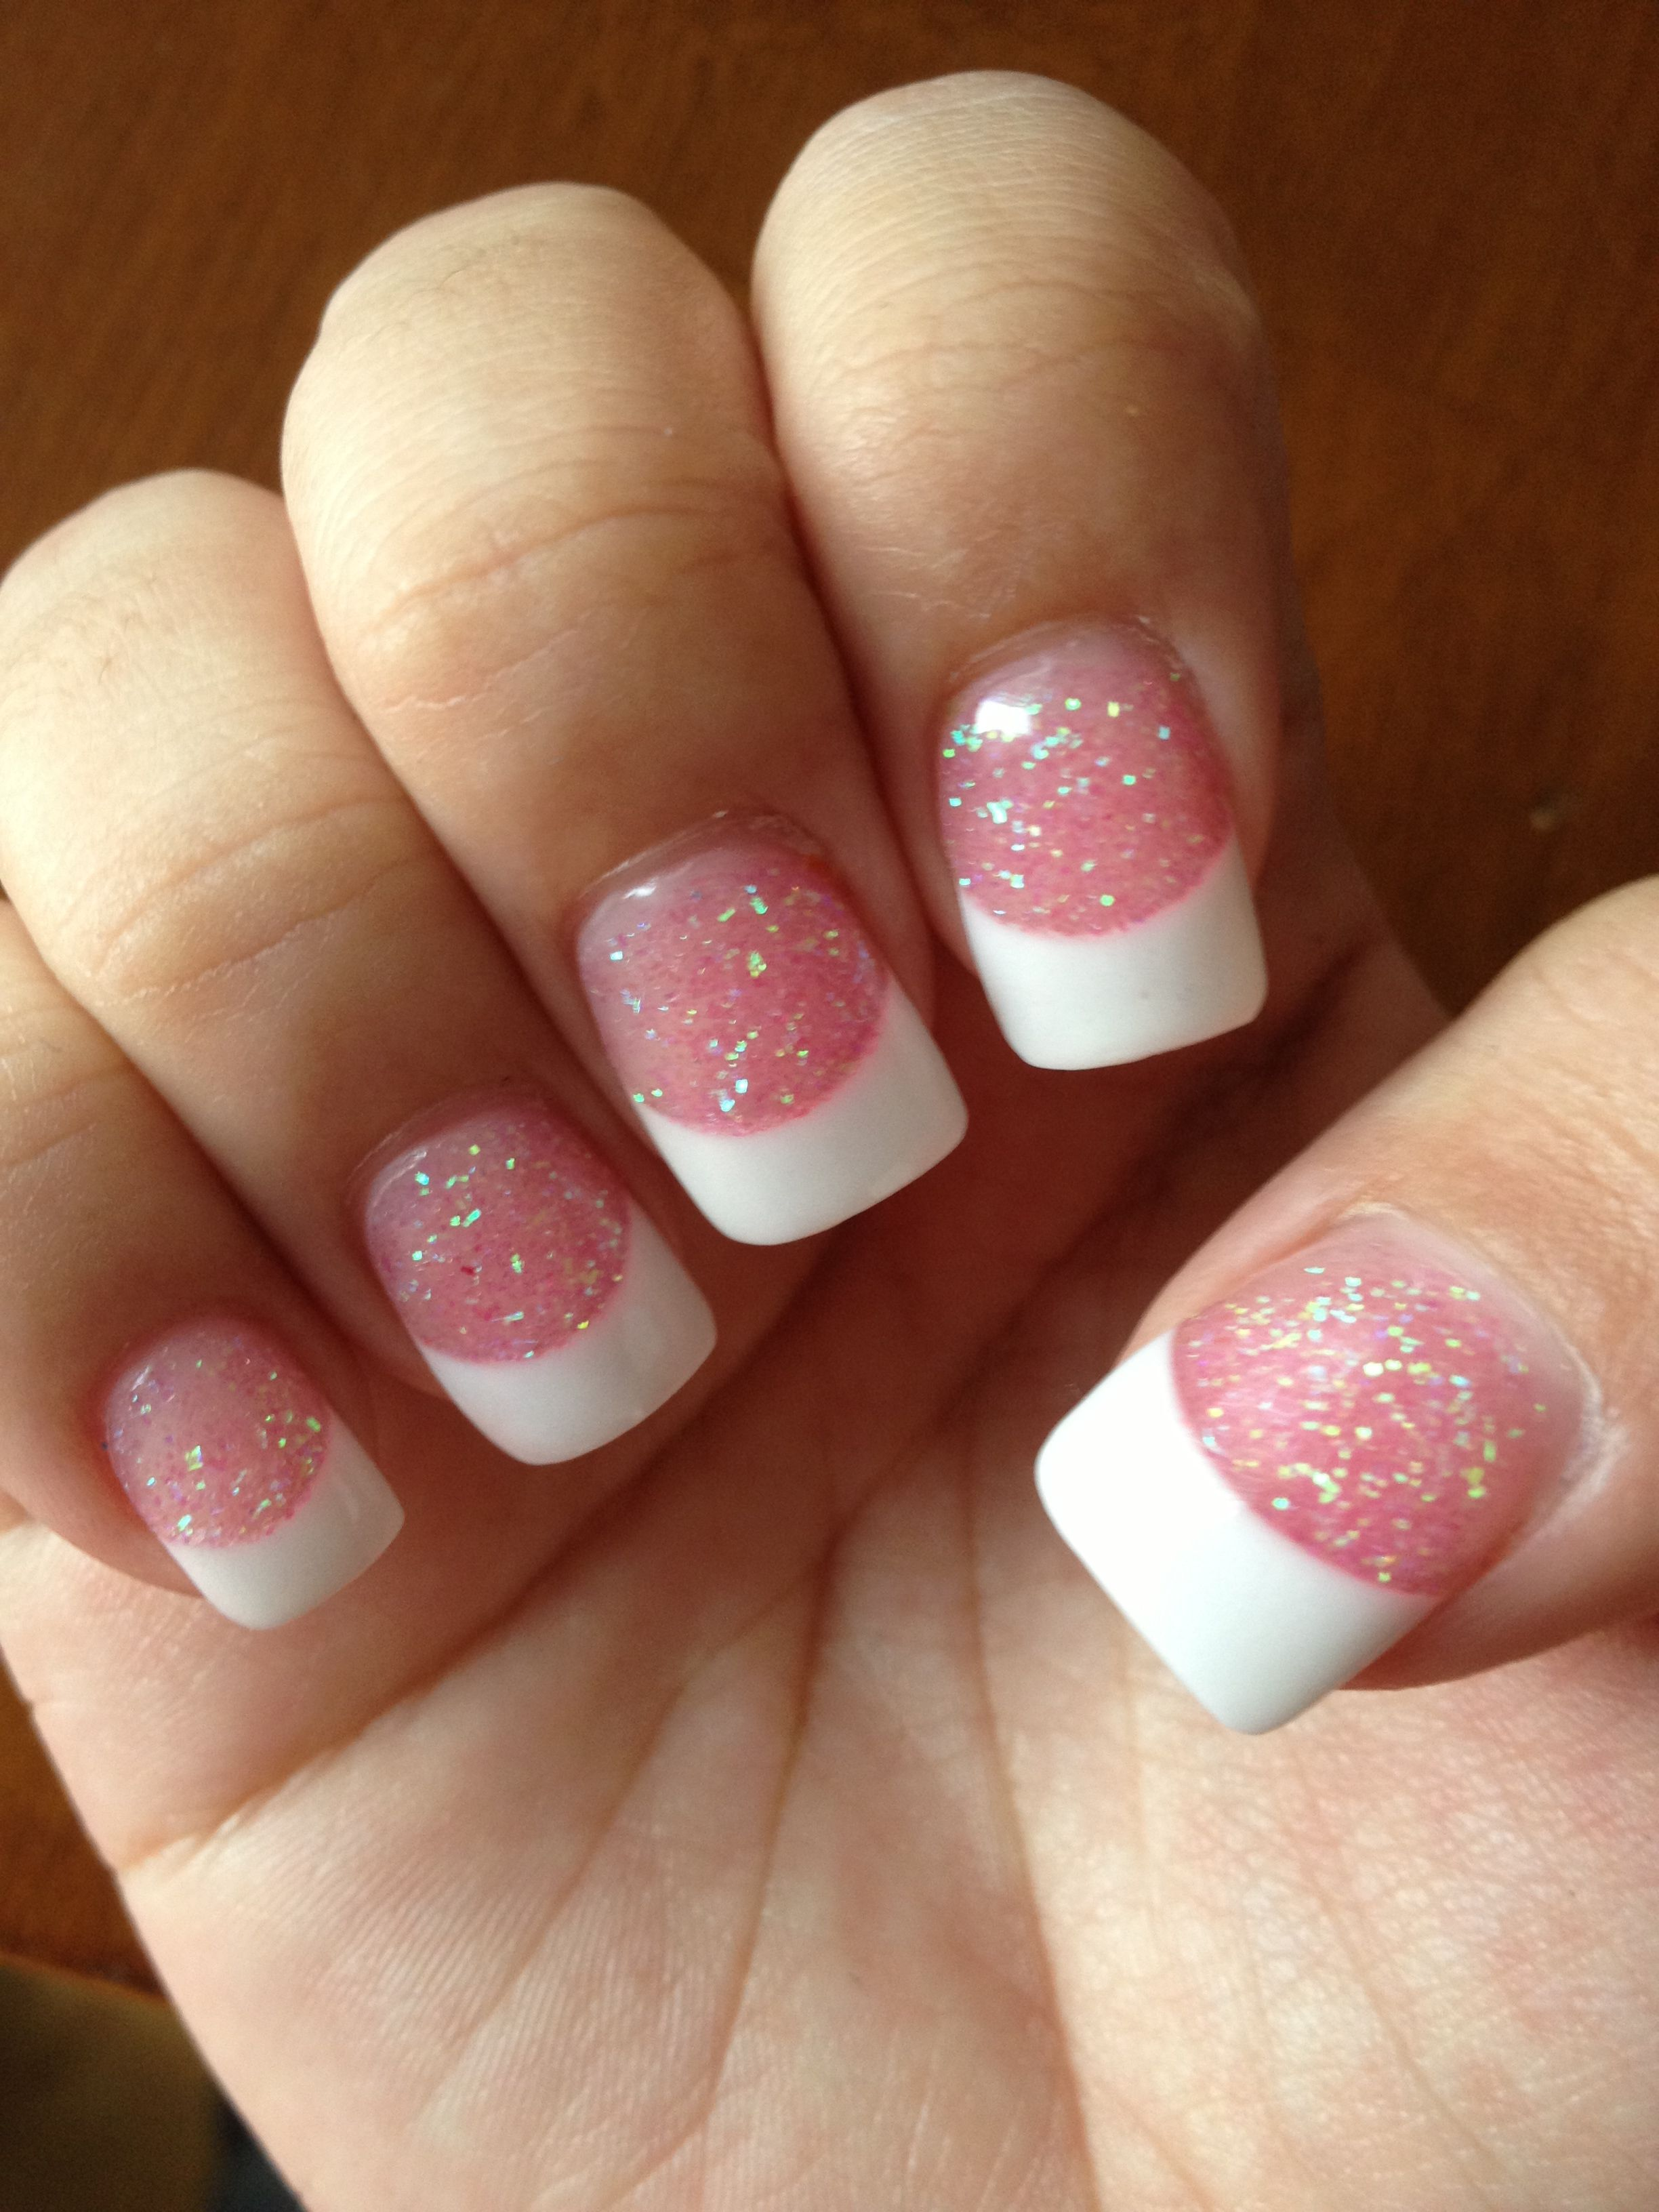 Acrylic nails- white tip with pink glitter base. | Nails<3 ...